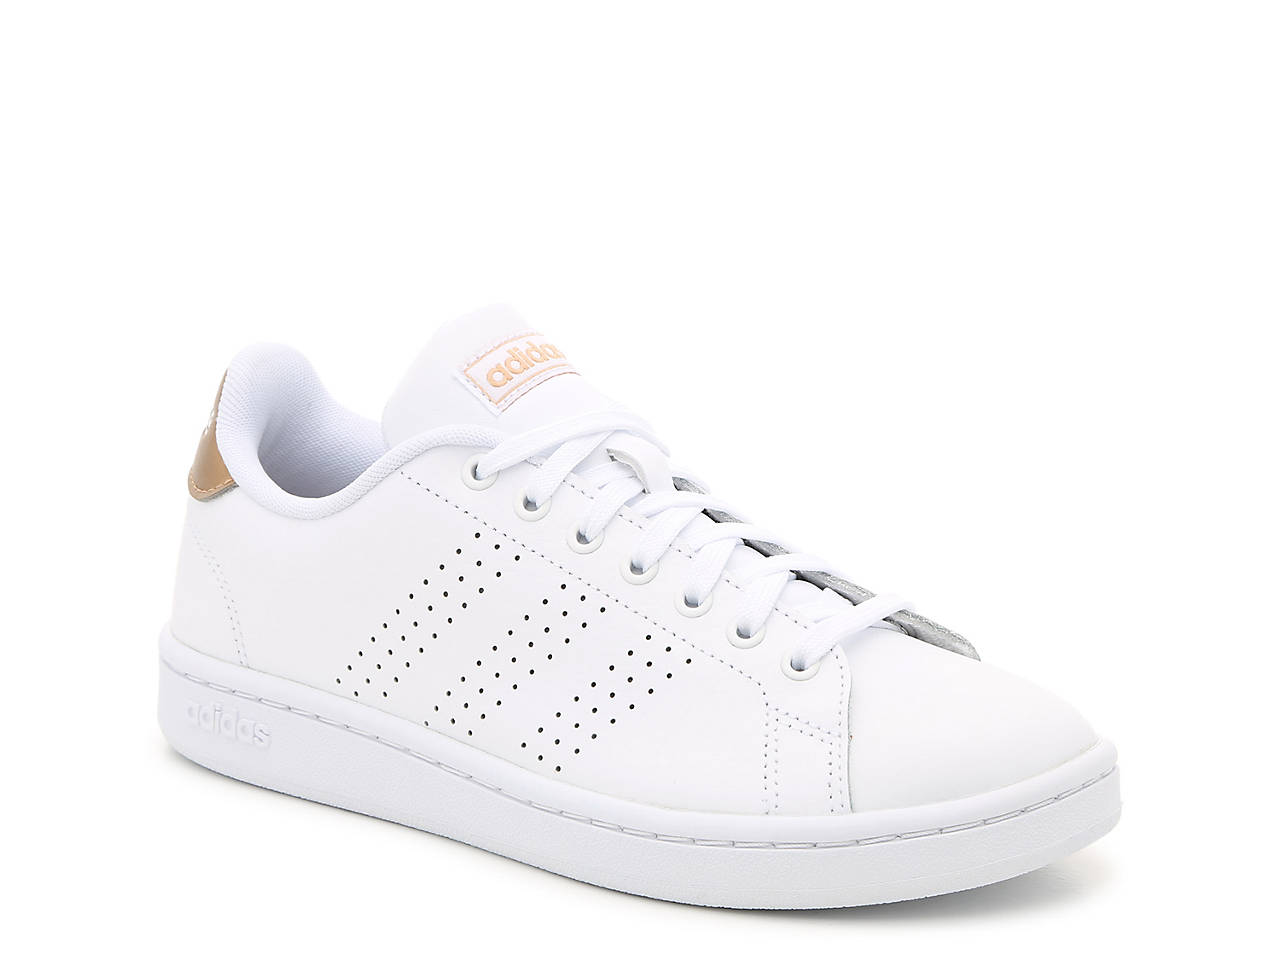 adidas Advantage Sneaker - Women's Women's Shoes | DSW